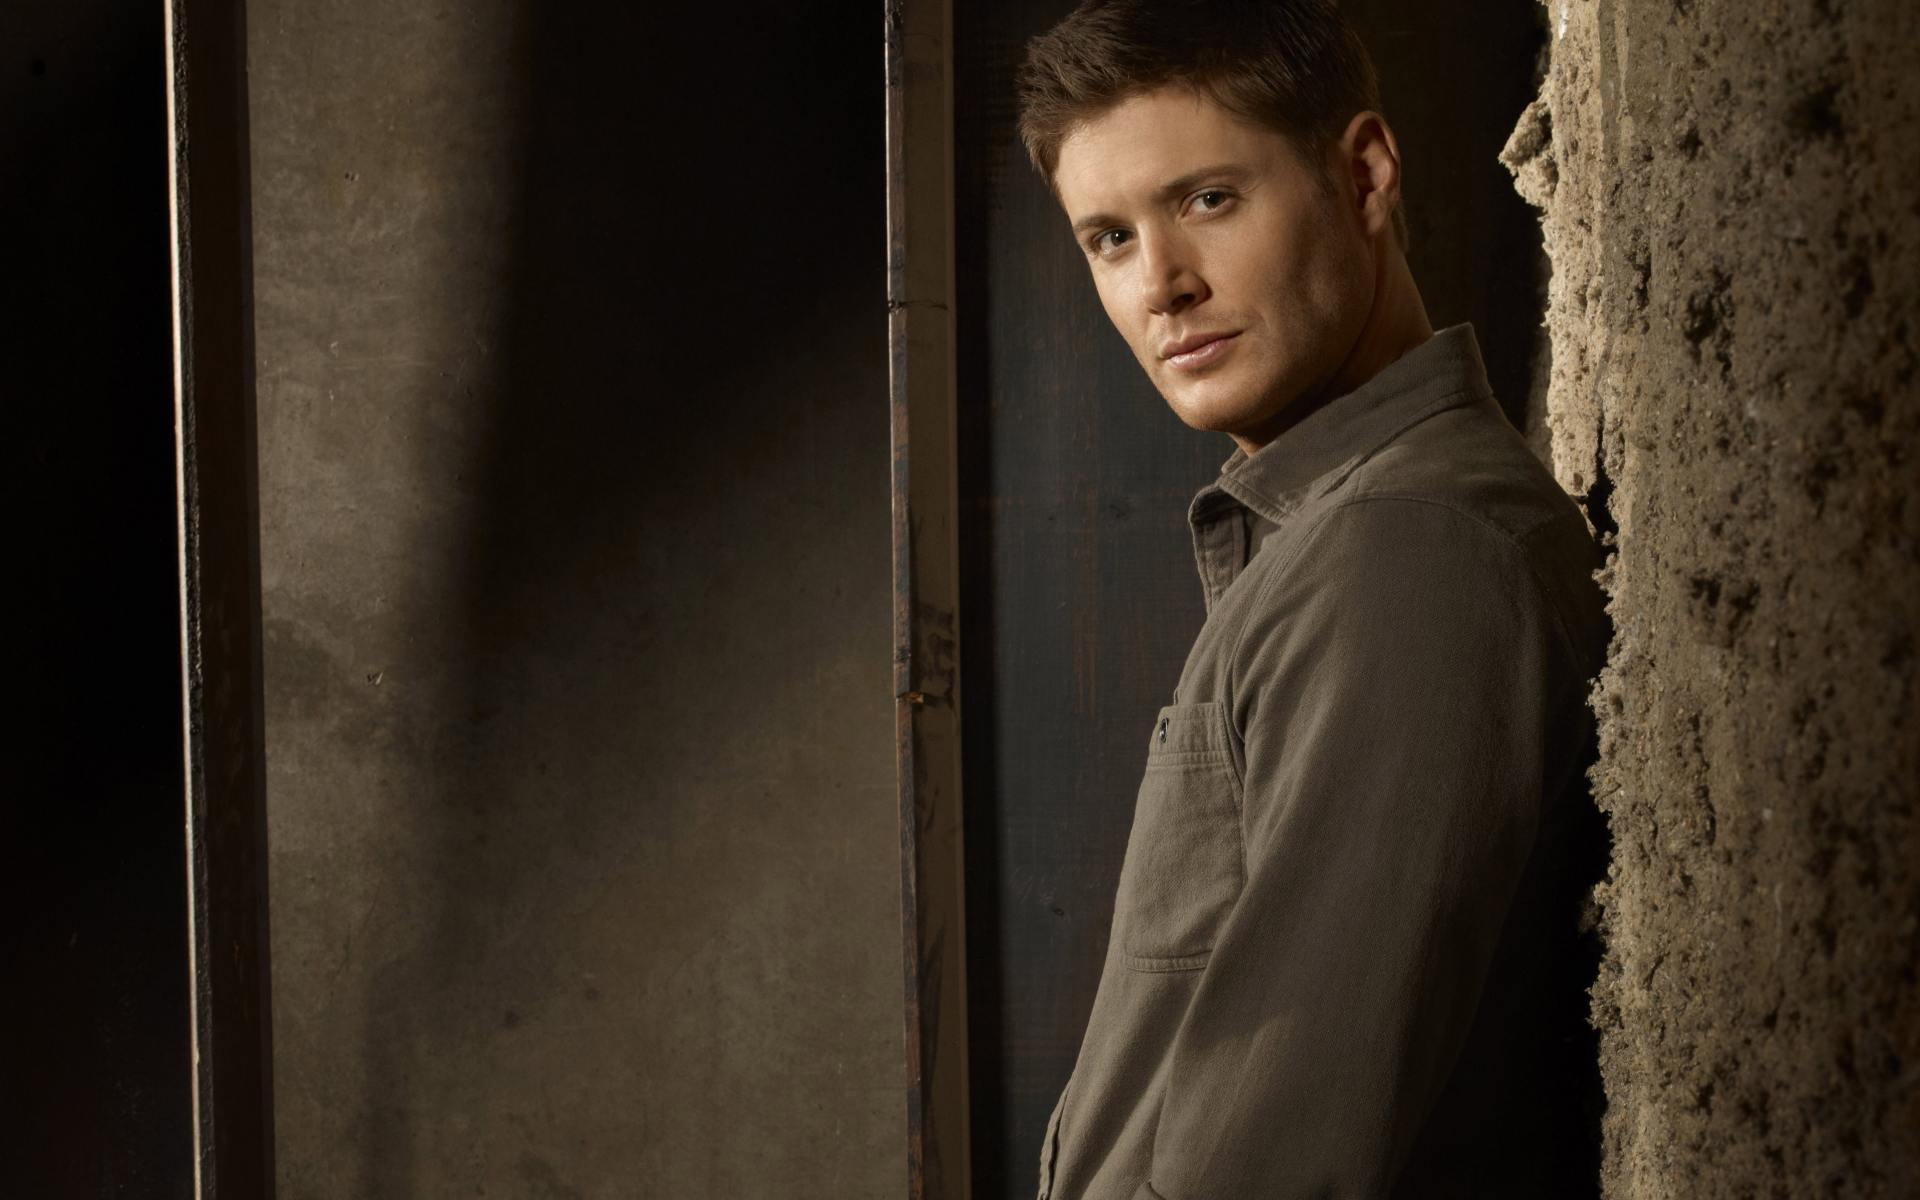 HD Wallpaper Of Dean Winchester Jensen Ackles Supernatural